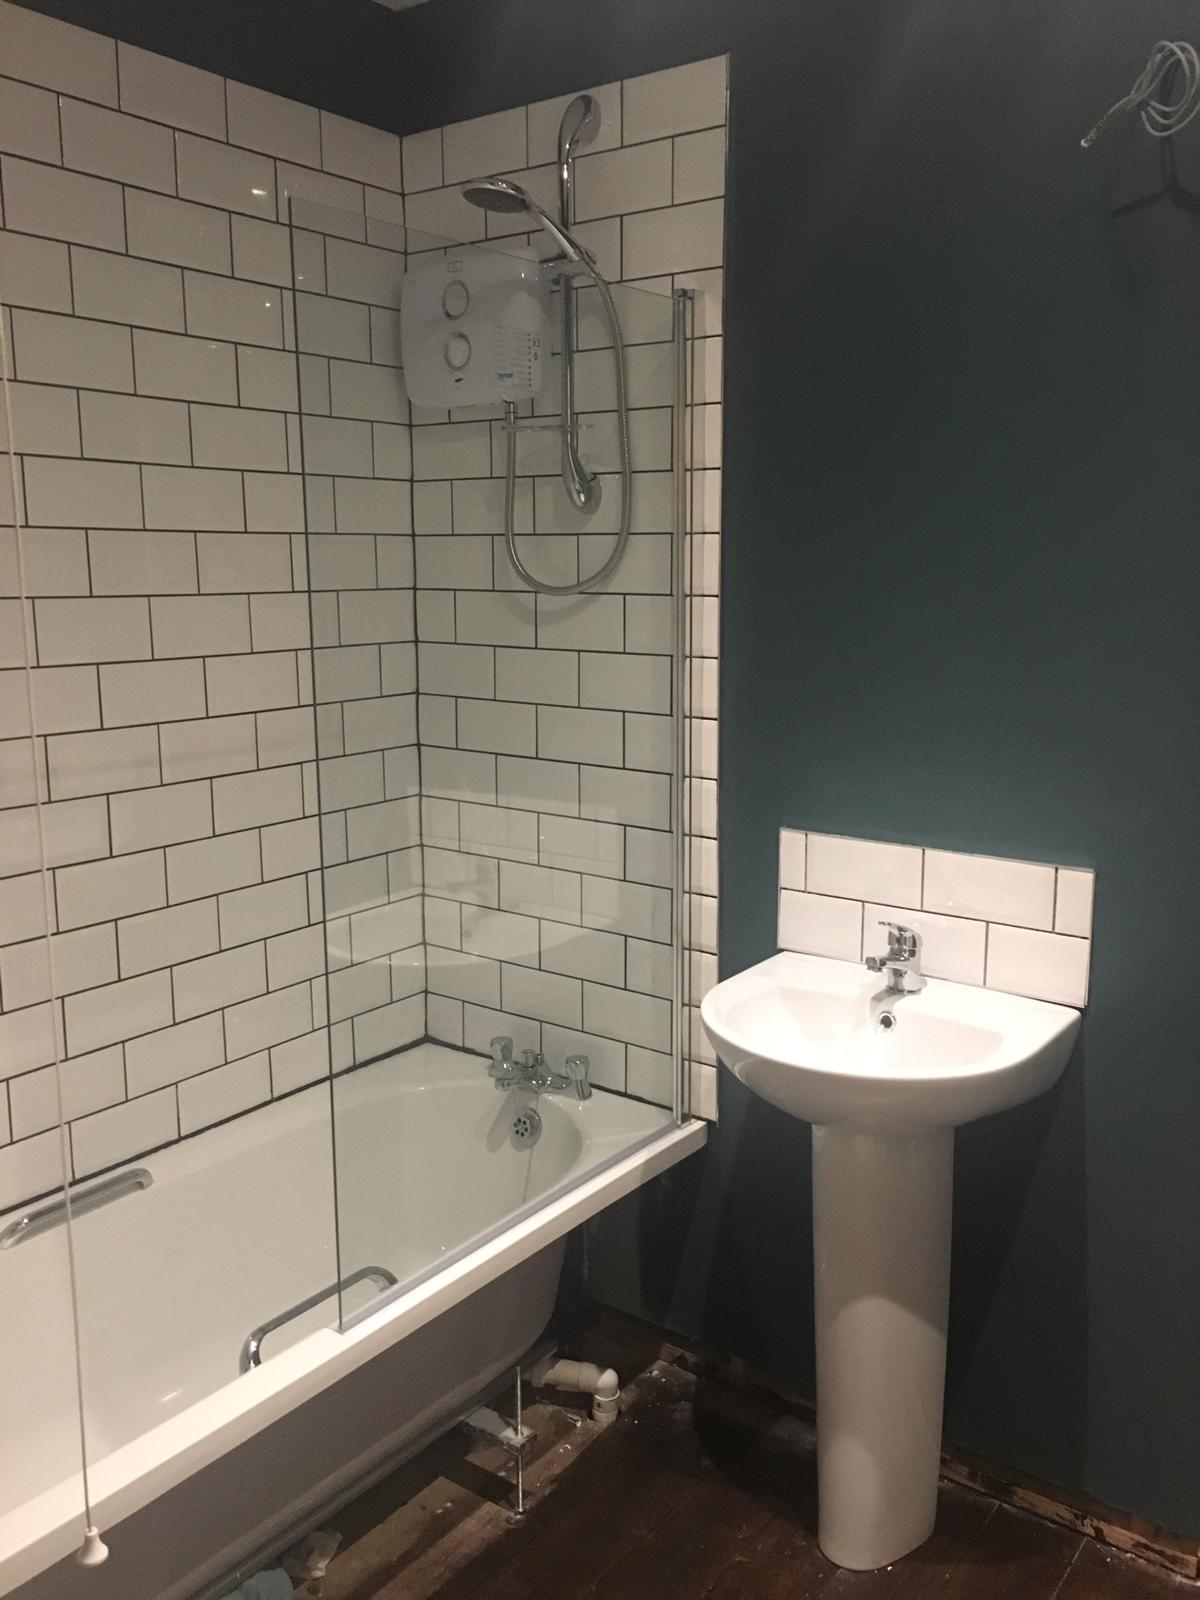 Shower refitted and sink installed